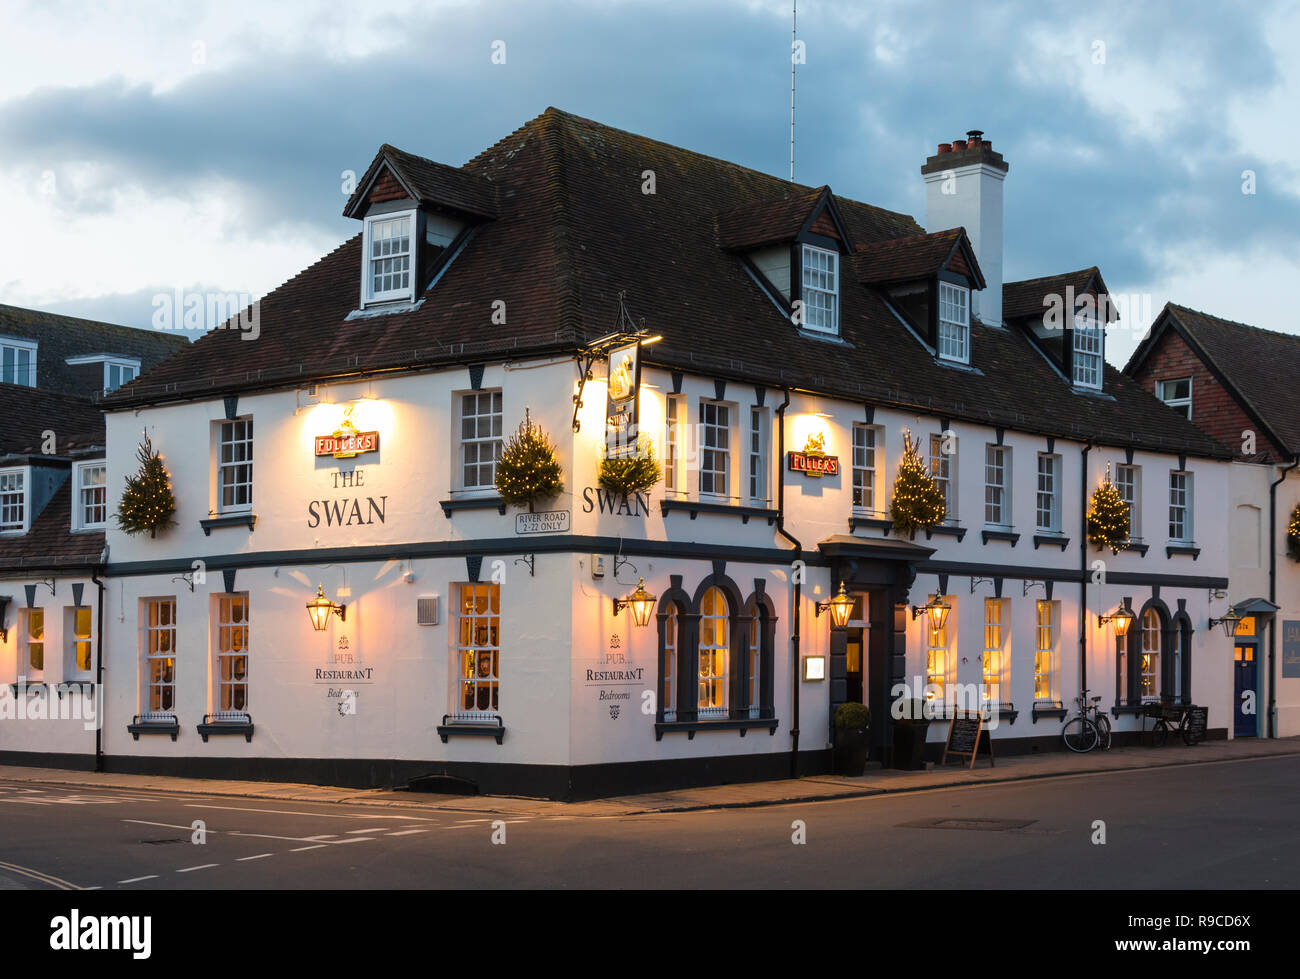 The Swan Hotel - A Pub and restaurant with bedrooms - Lit up late afternoon in Winter in Arundel, West Sussex, England, UK. - Stock Image